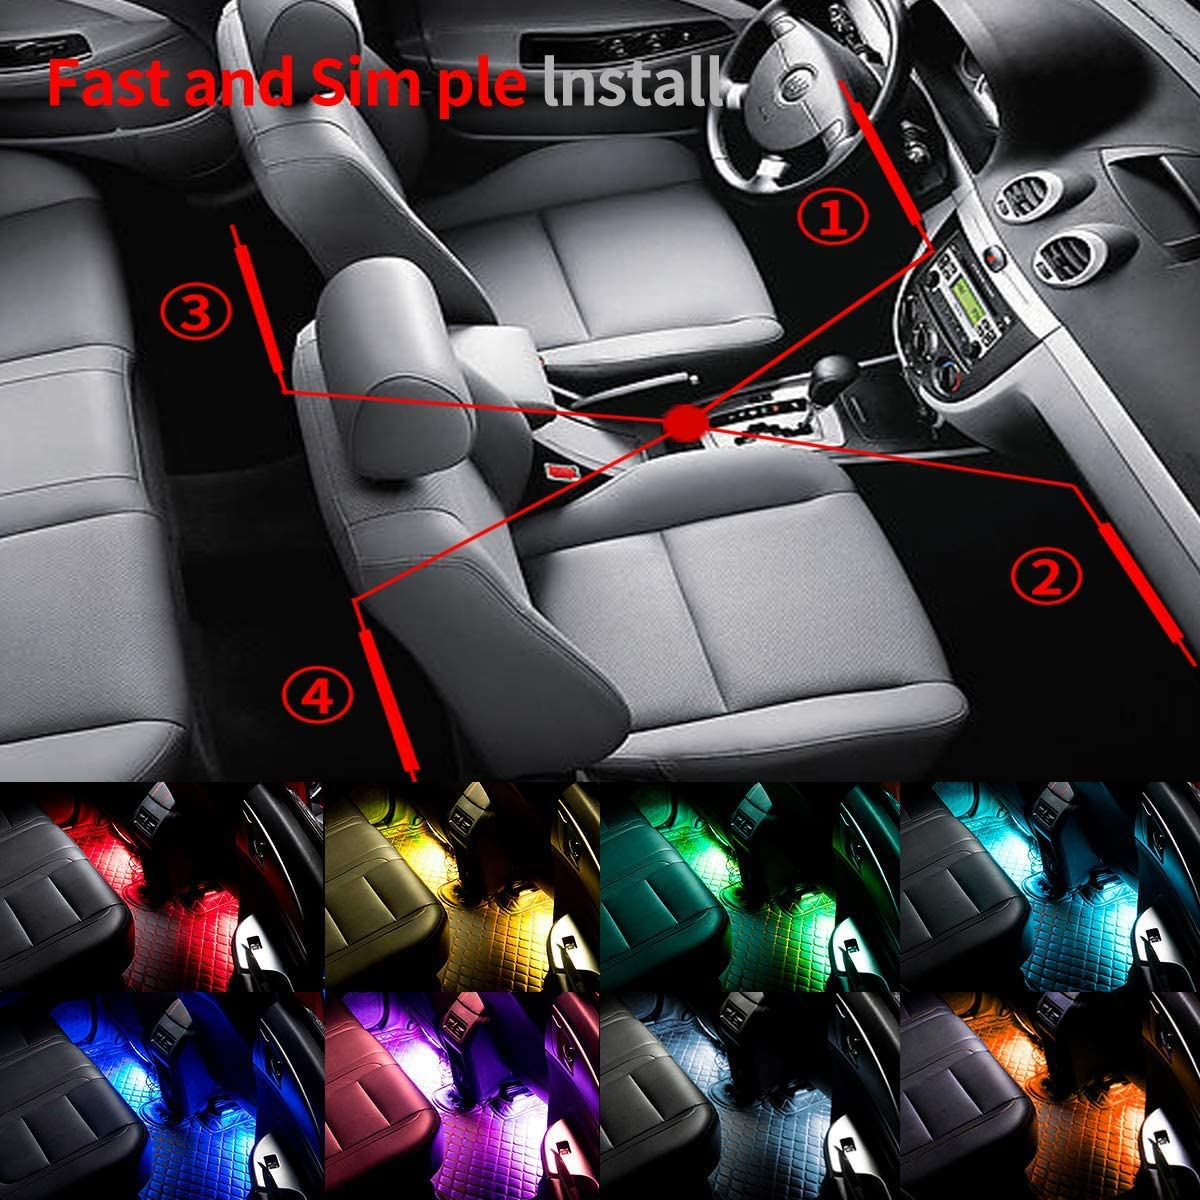 Car Charger Included Car LED Strip Light DC 12V Small Ant 4pcs 48 LED Multi-color Car Interior Lights Under Dash Lighting Waterproof Kit with Sound Active Function and Wireless Remote Control